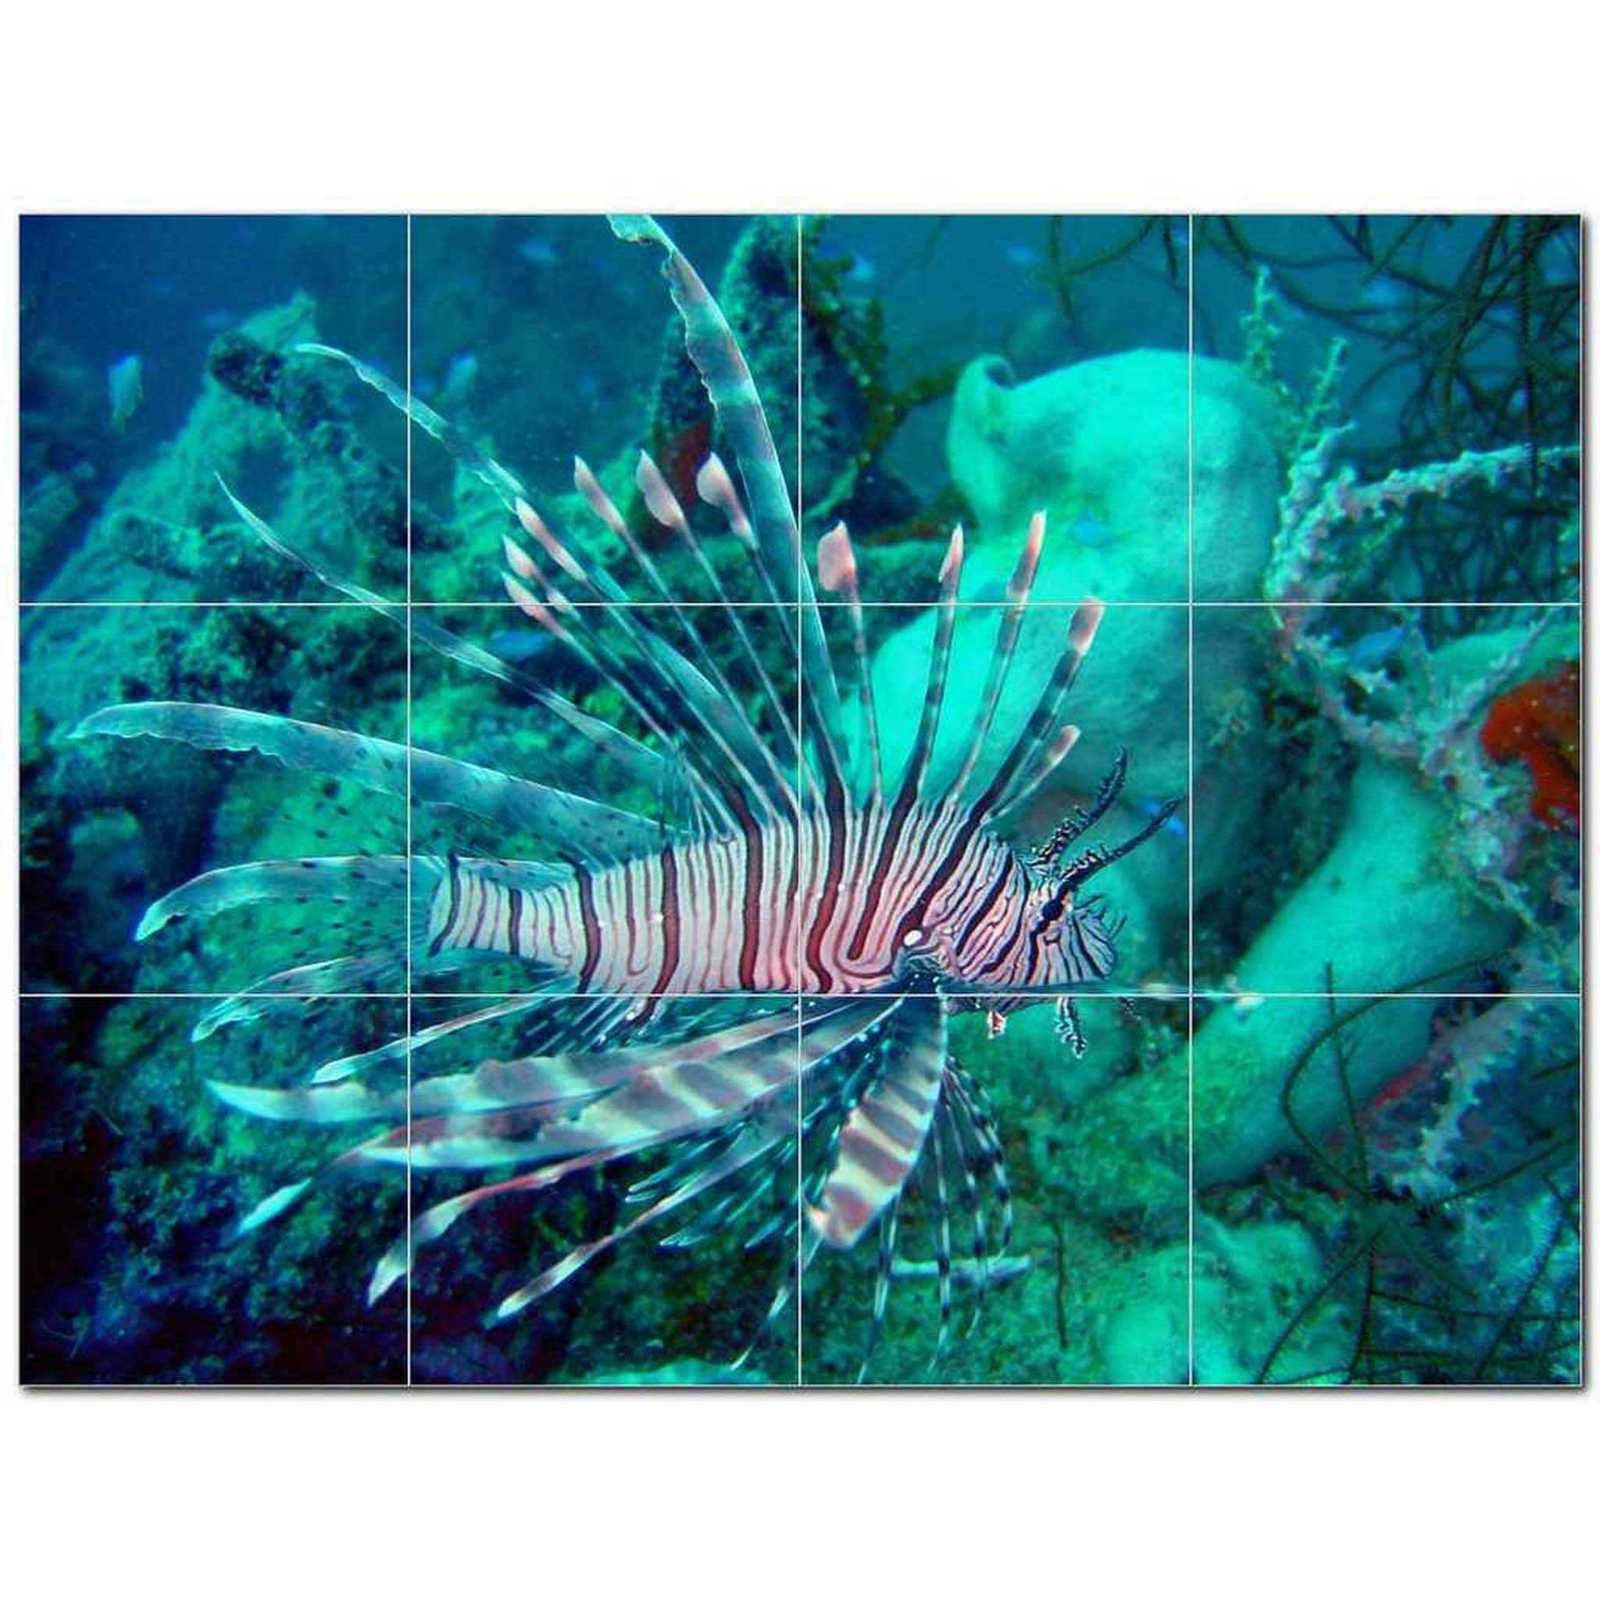 Primary image for Sealife Picture Ceramic Tile Mural Kitchen Backsplash Bathroom Shower BAZ405822